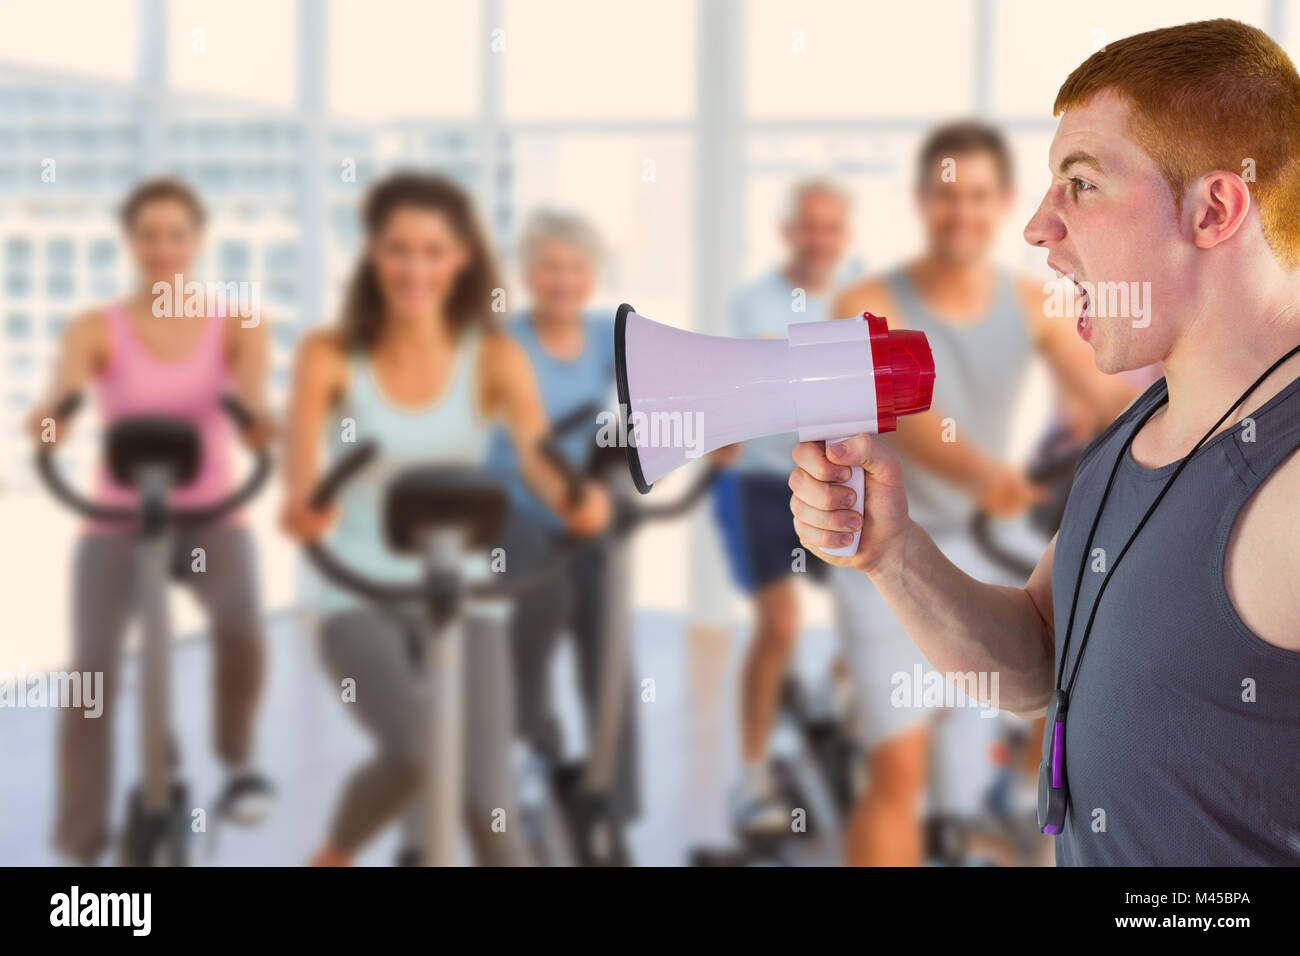 Image composite en colère de l'entraîneur personnel yelling through megaphone Photo Stock